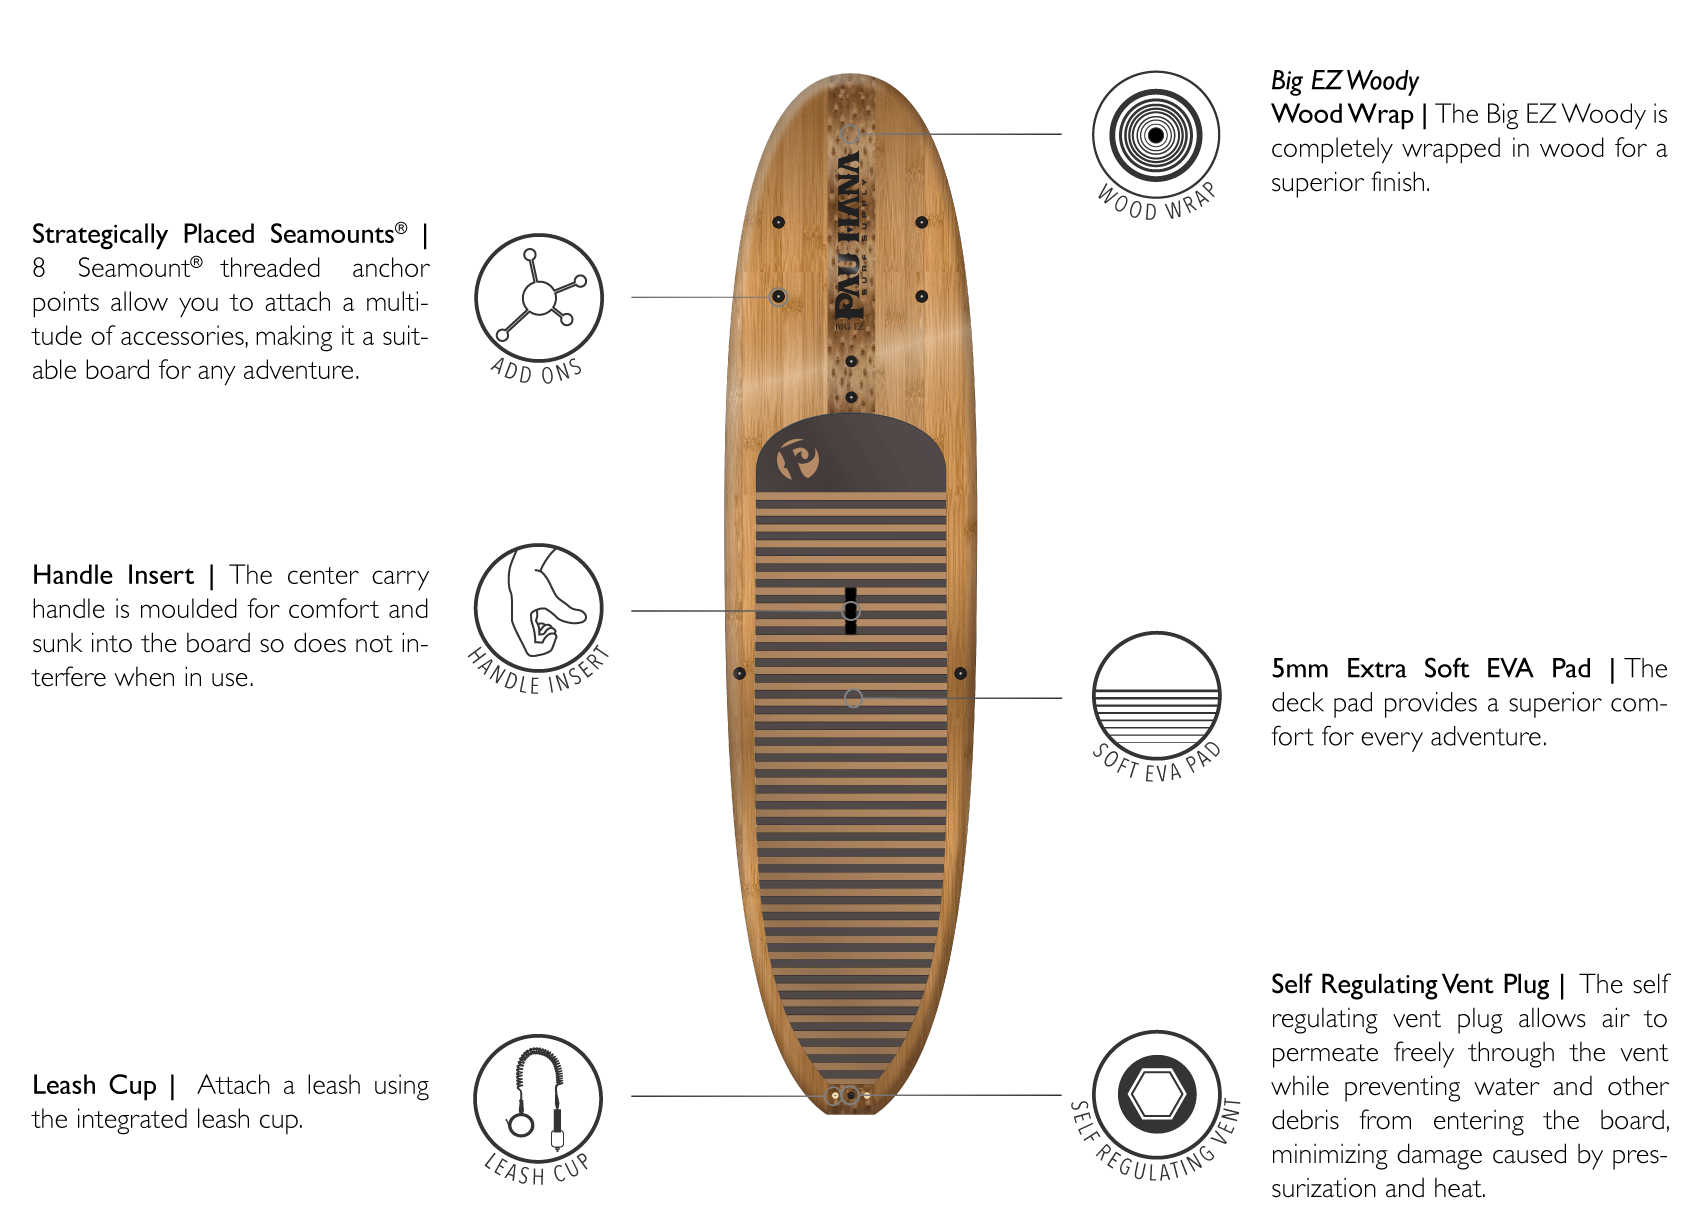 This is the best family paddle board. features big ez Hawaiian SUP bambooo strategically placed seamounts, center grab handle, leash cup, wood wrap superior finish, 5mm extra soft Eva deck pad, self regulating vent plug